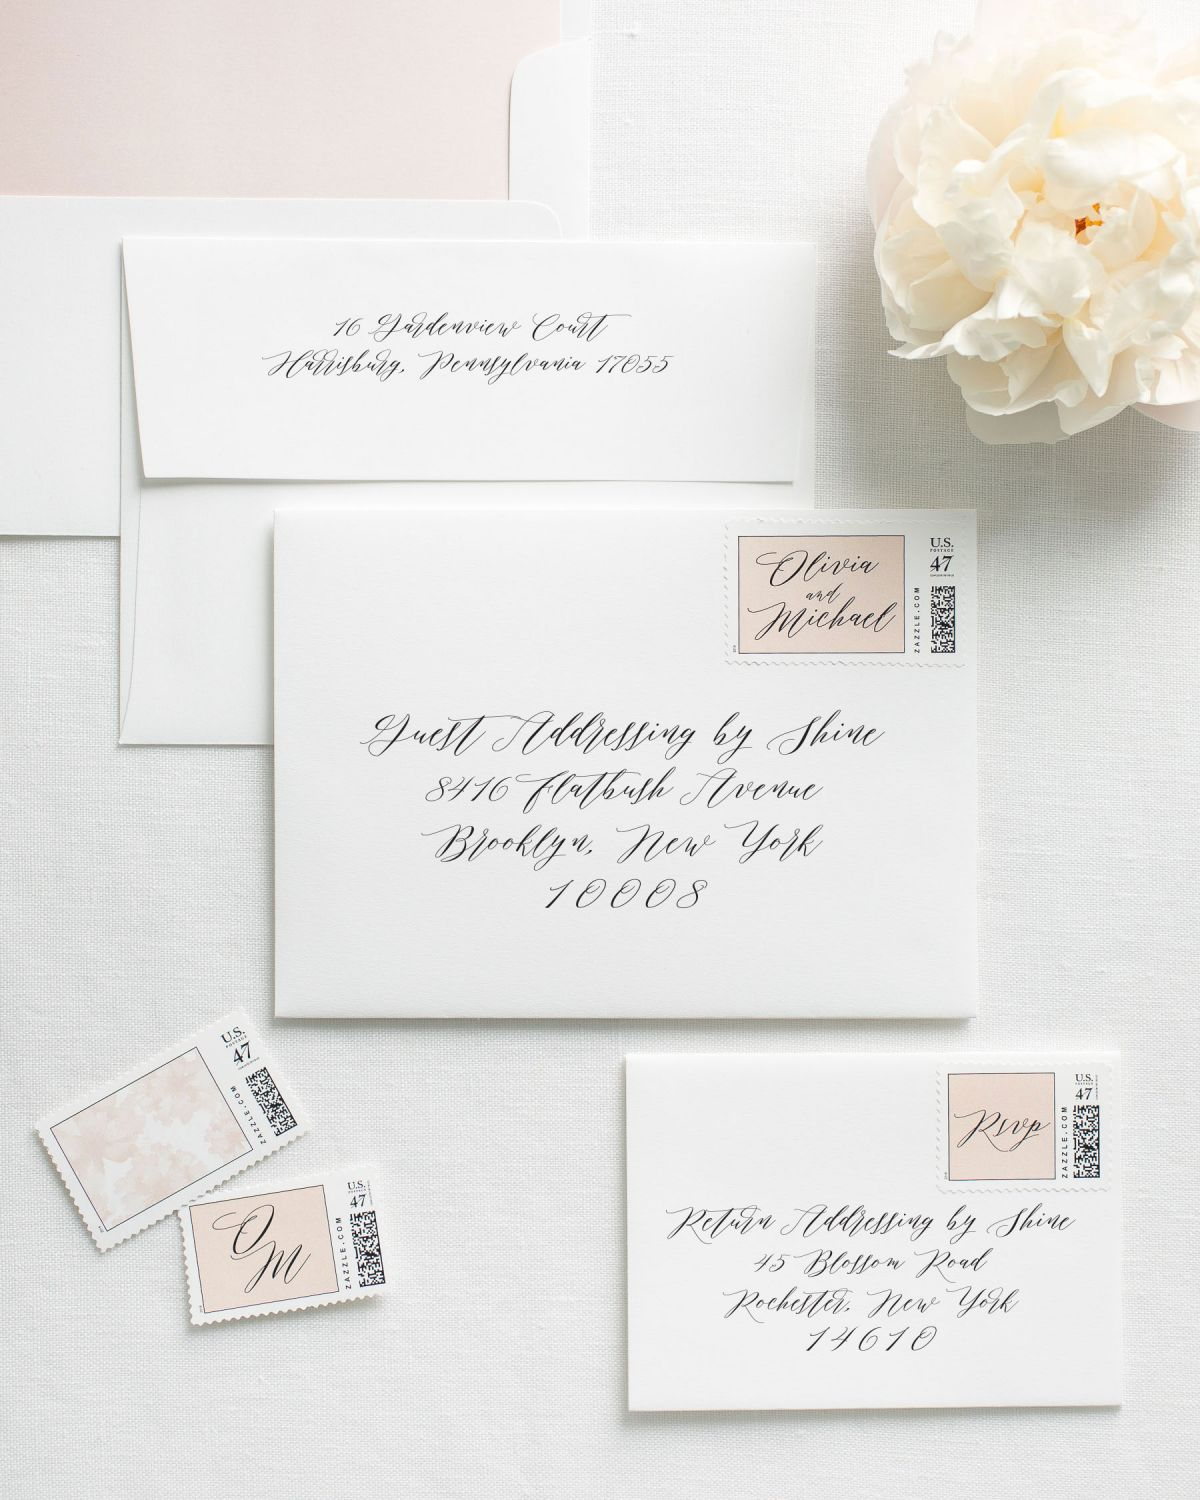 Wedding Invitation Envelopes with Calligraphy Addressing